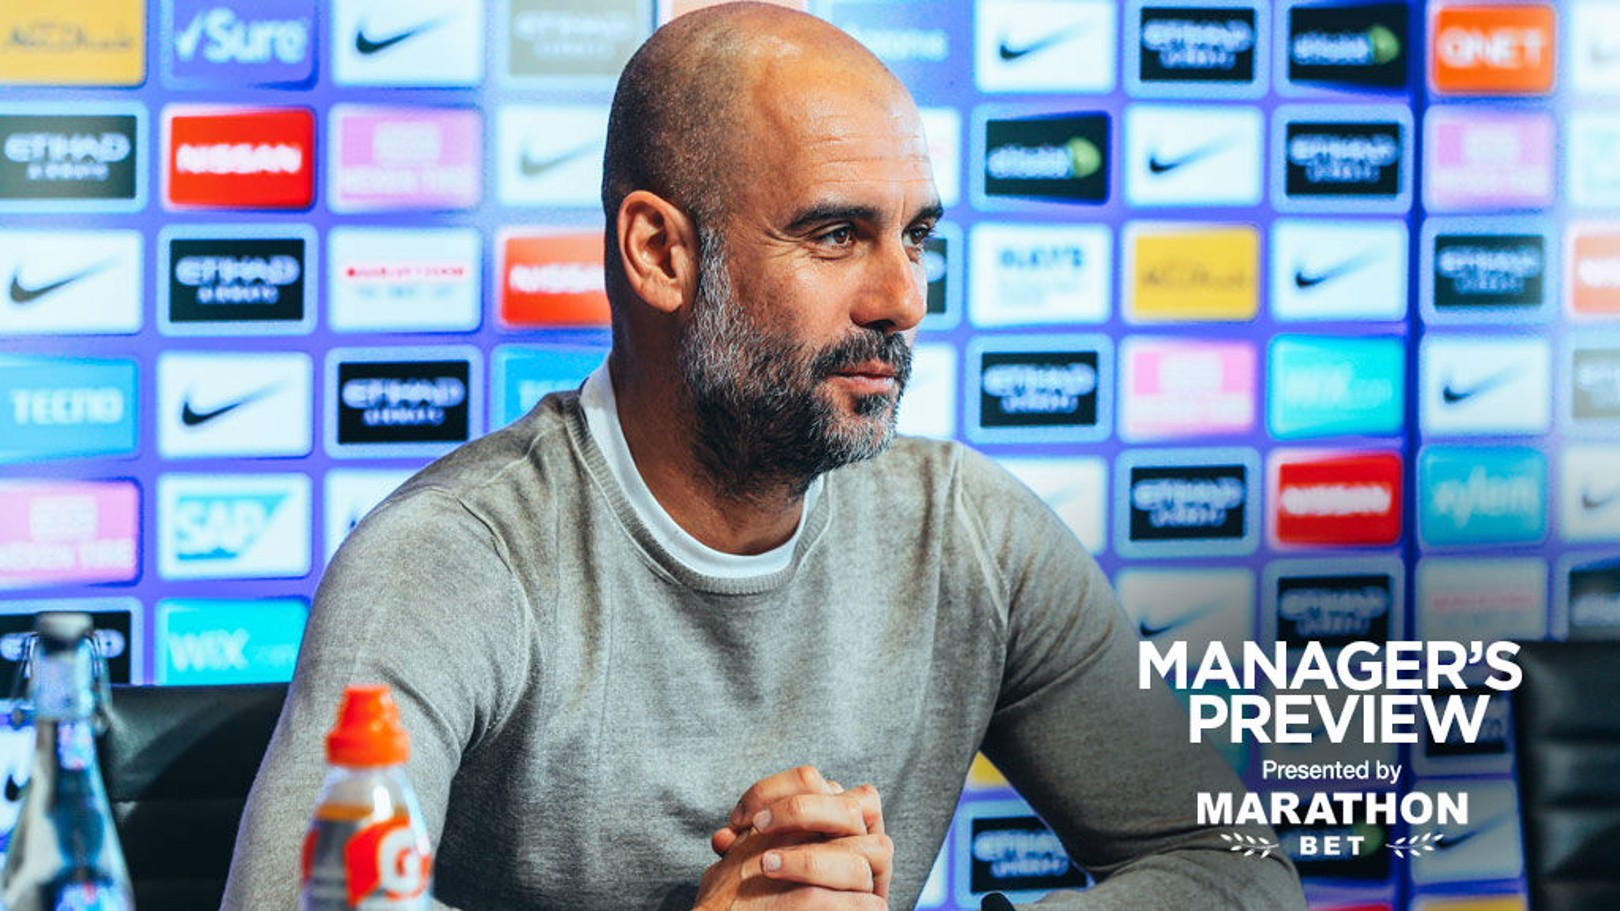 Pep : On veut rester au top niveau